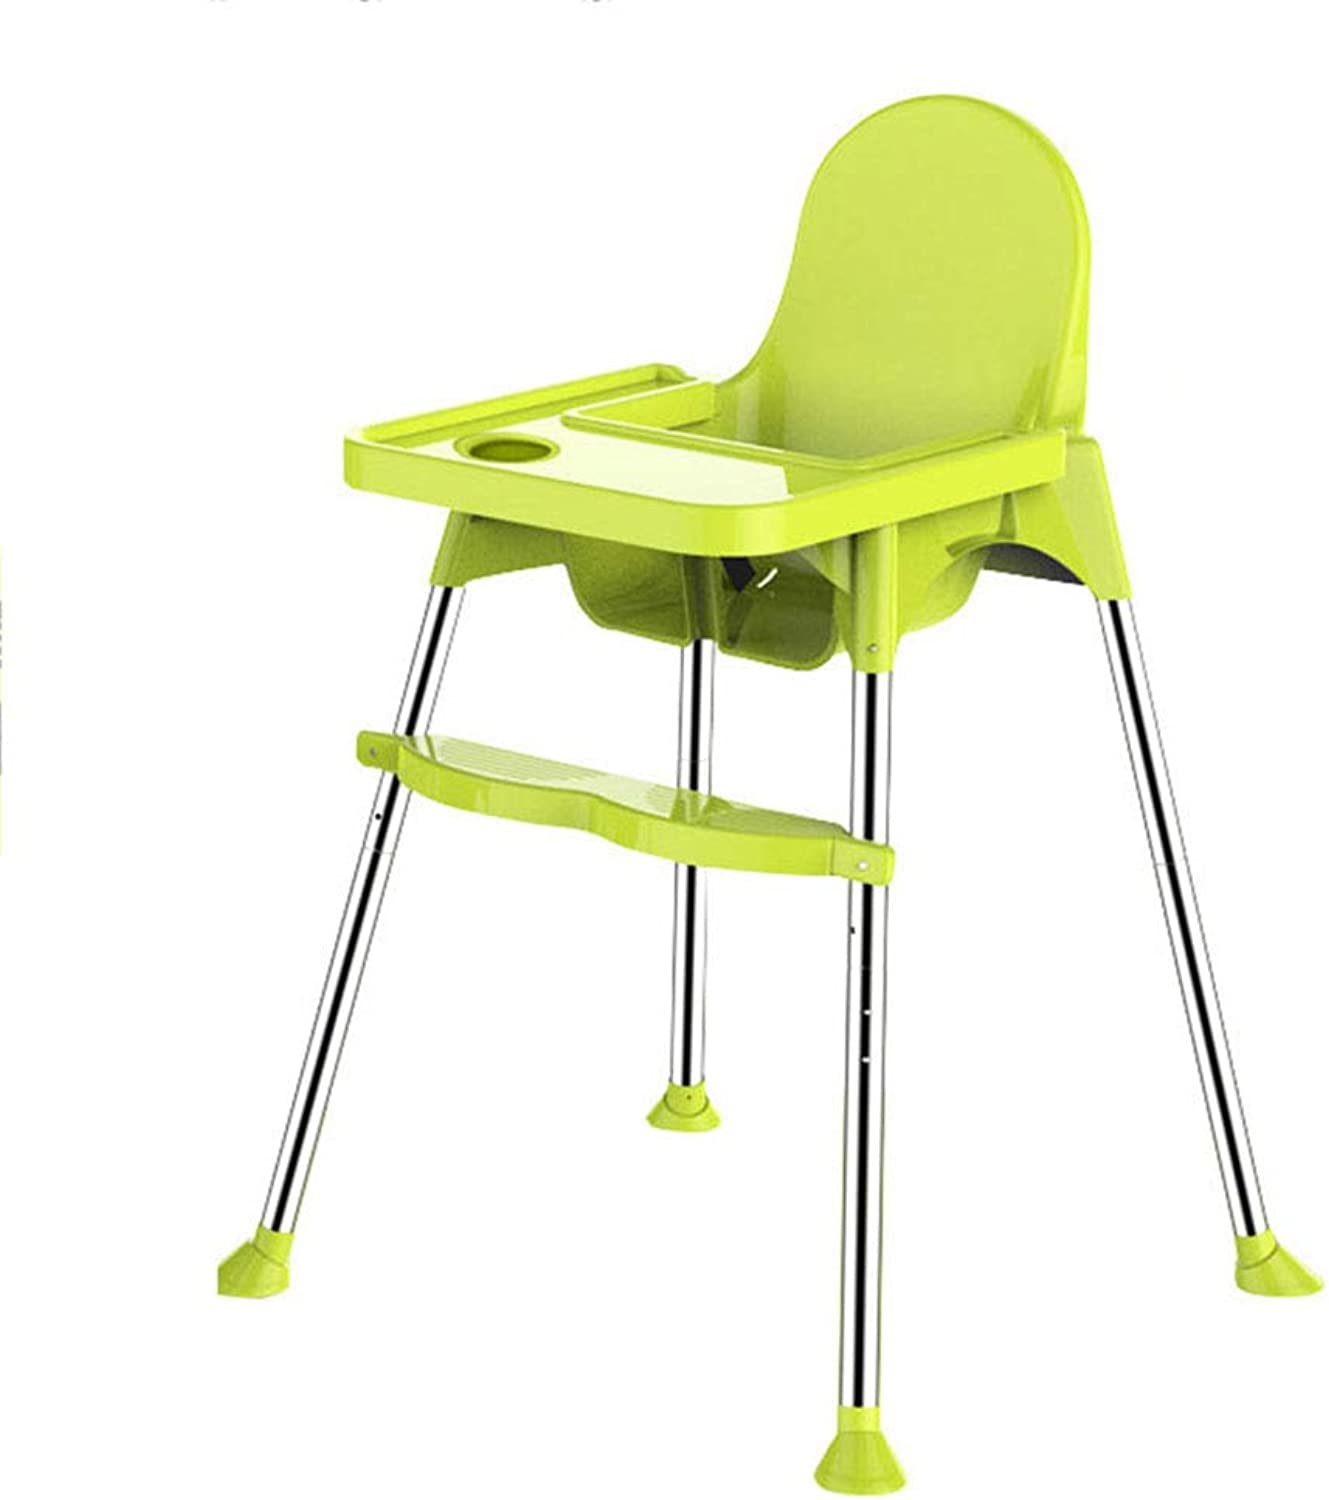 Portable Baby Dining Chair Highchairs - with Seat Belt and Adjustable Pedal, Seat Height Adjustable